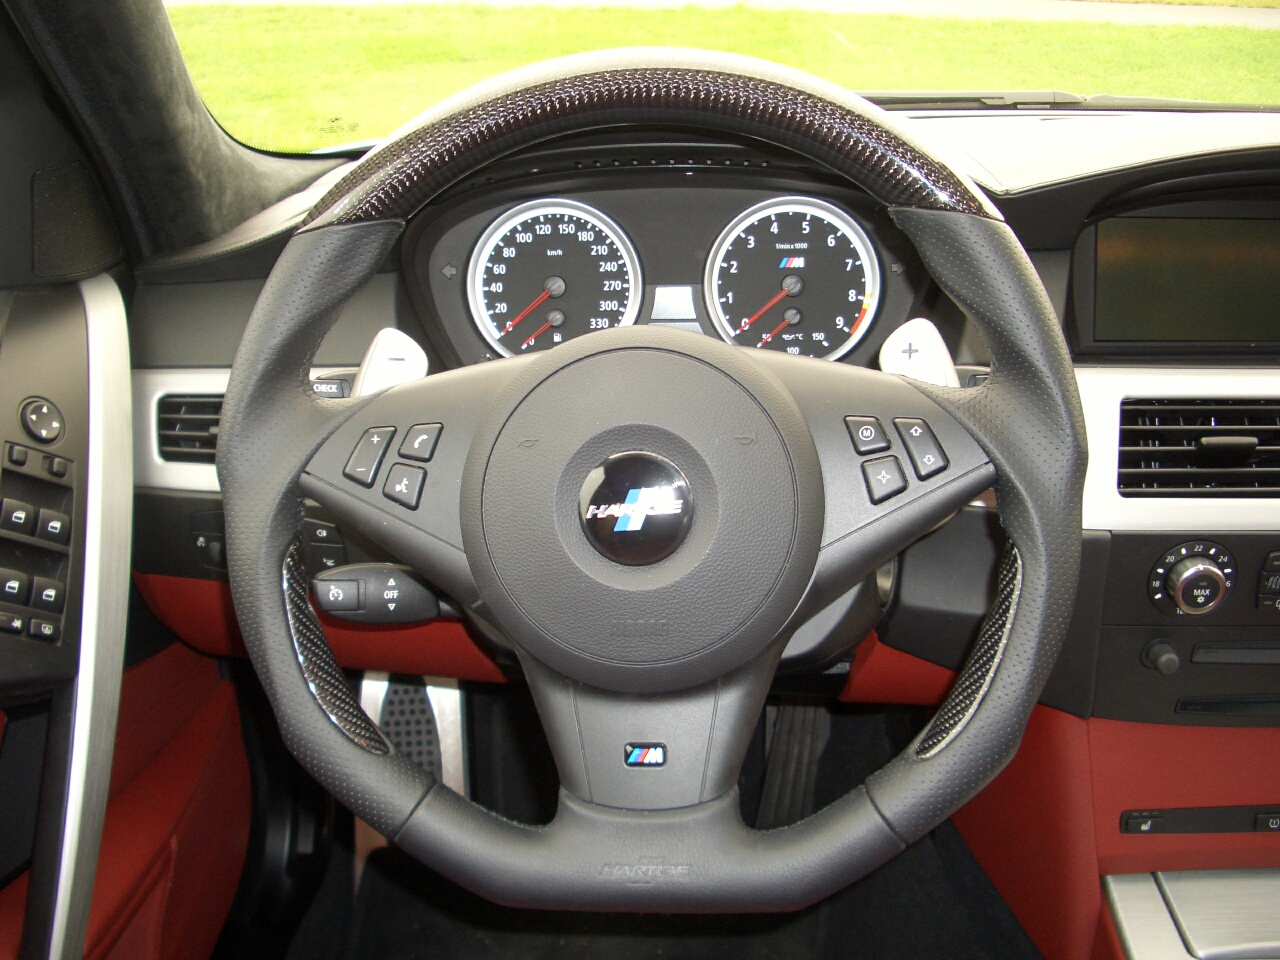 hartge steering wheel for the bmw m5 and m6 bmw m5 forum. Black Bedroom Furniture Sets. Home Design Ideas